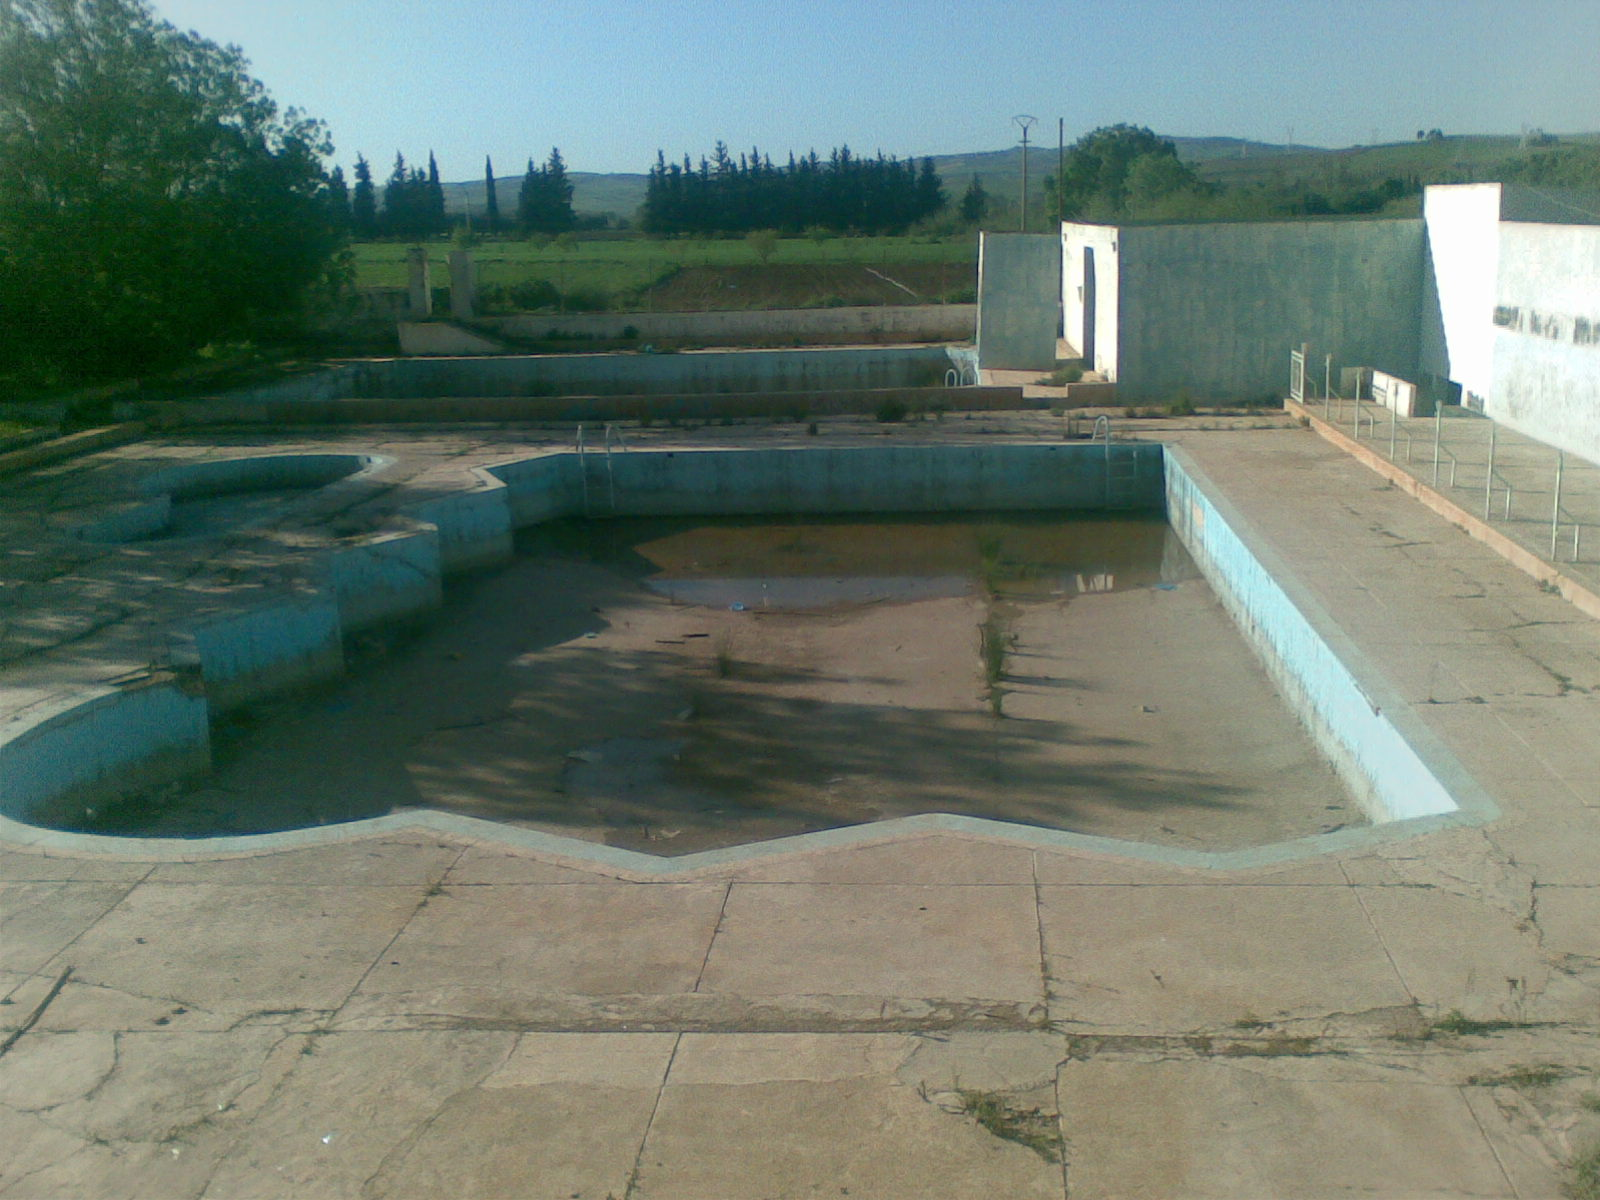 Always no comment for Piscine abandonnee